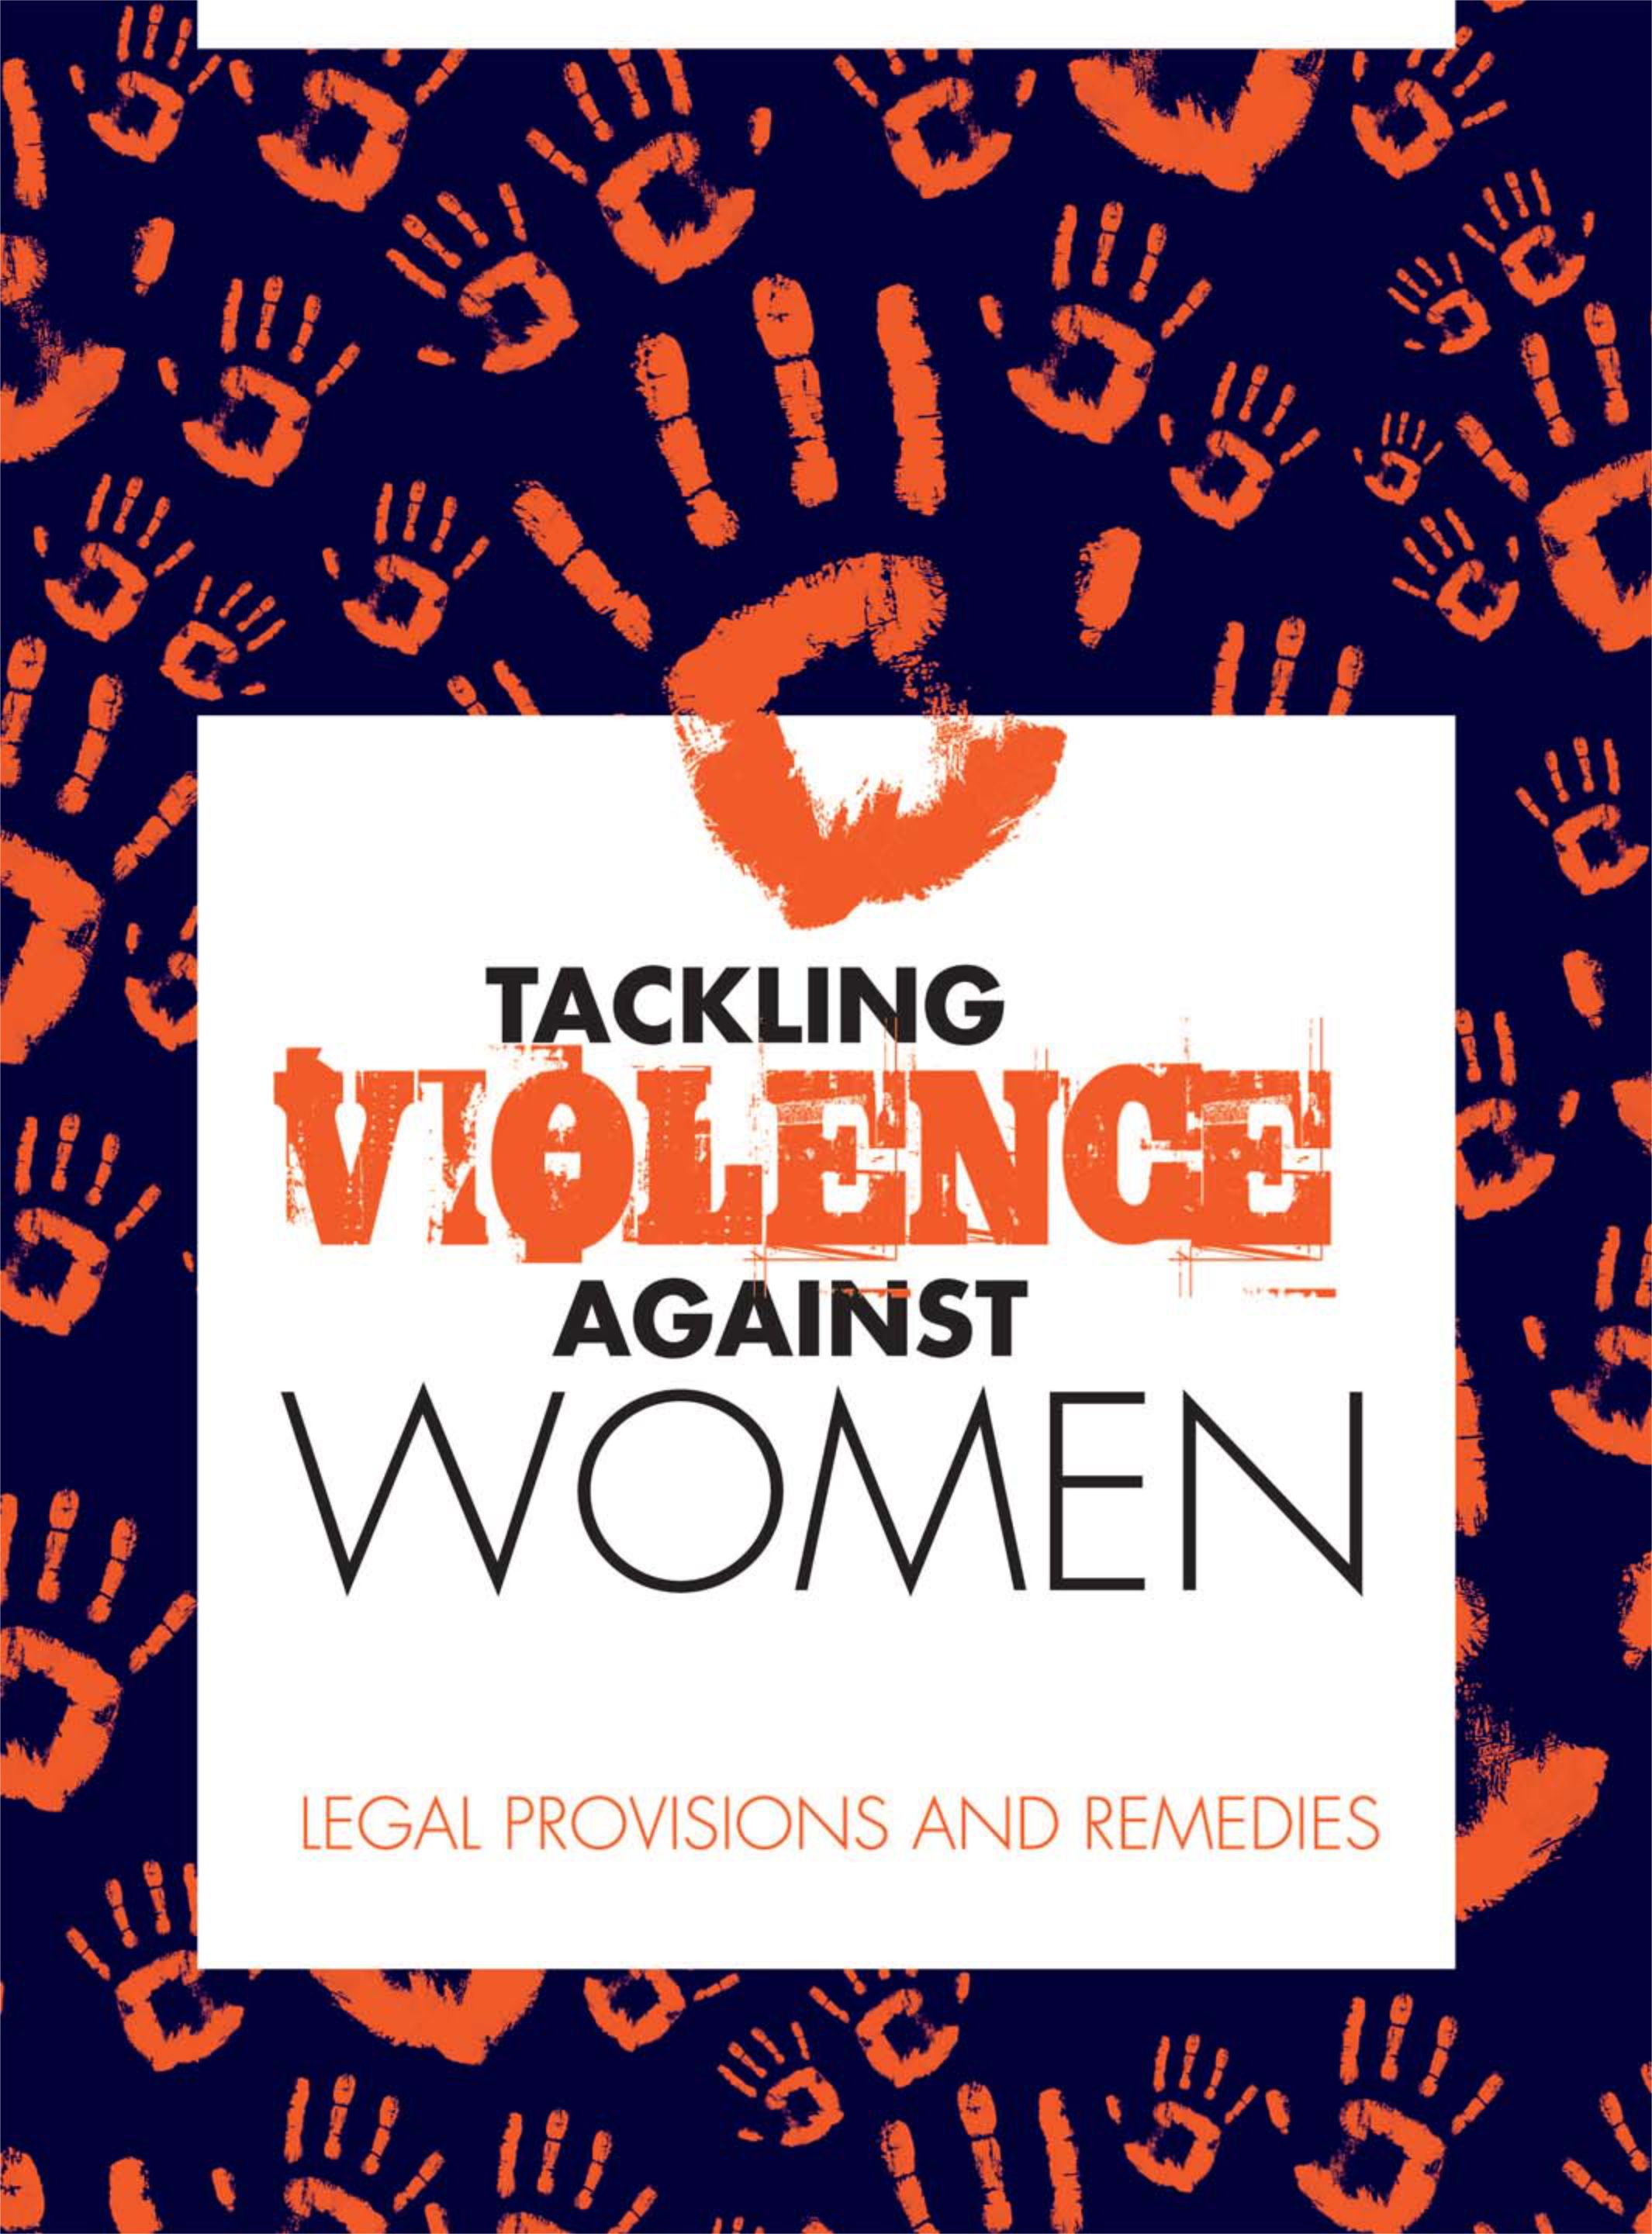 Tackling Violence Against Women